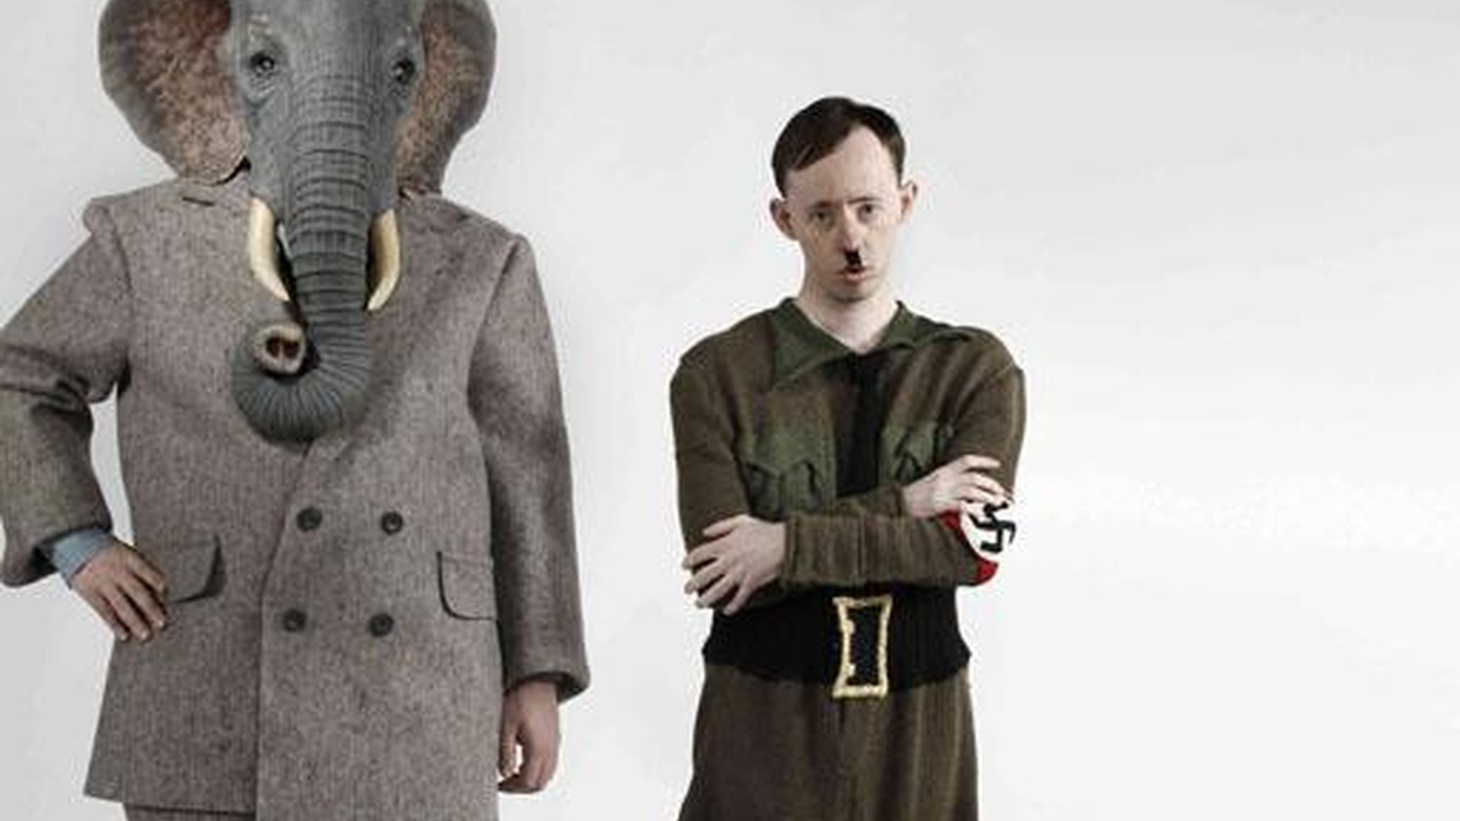 """The company that created """"Ganesh versus the Third Reich"""" is, in their own words, """"a company driven by an ensemble of…actors perceived to have intellectual disabilities."""""""